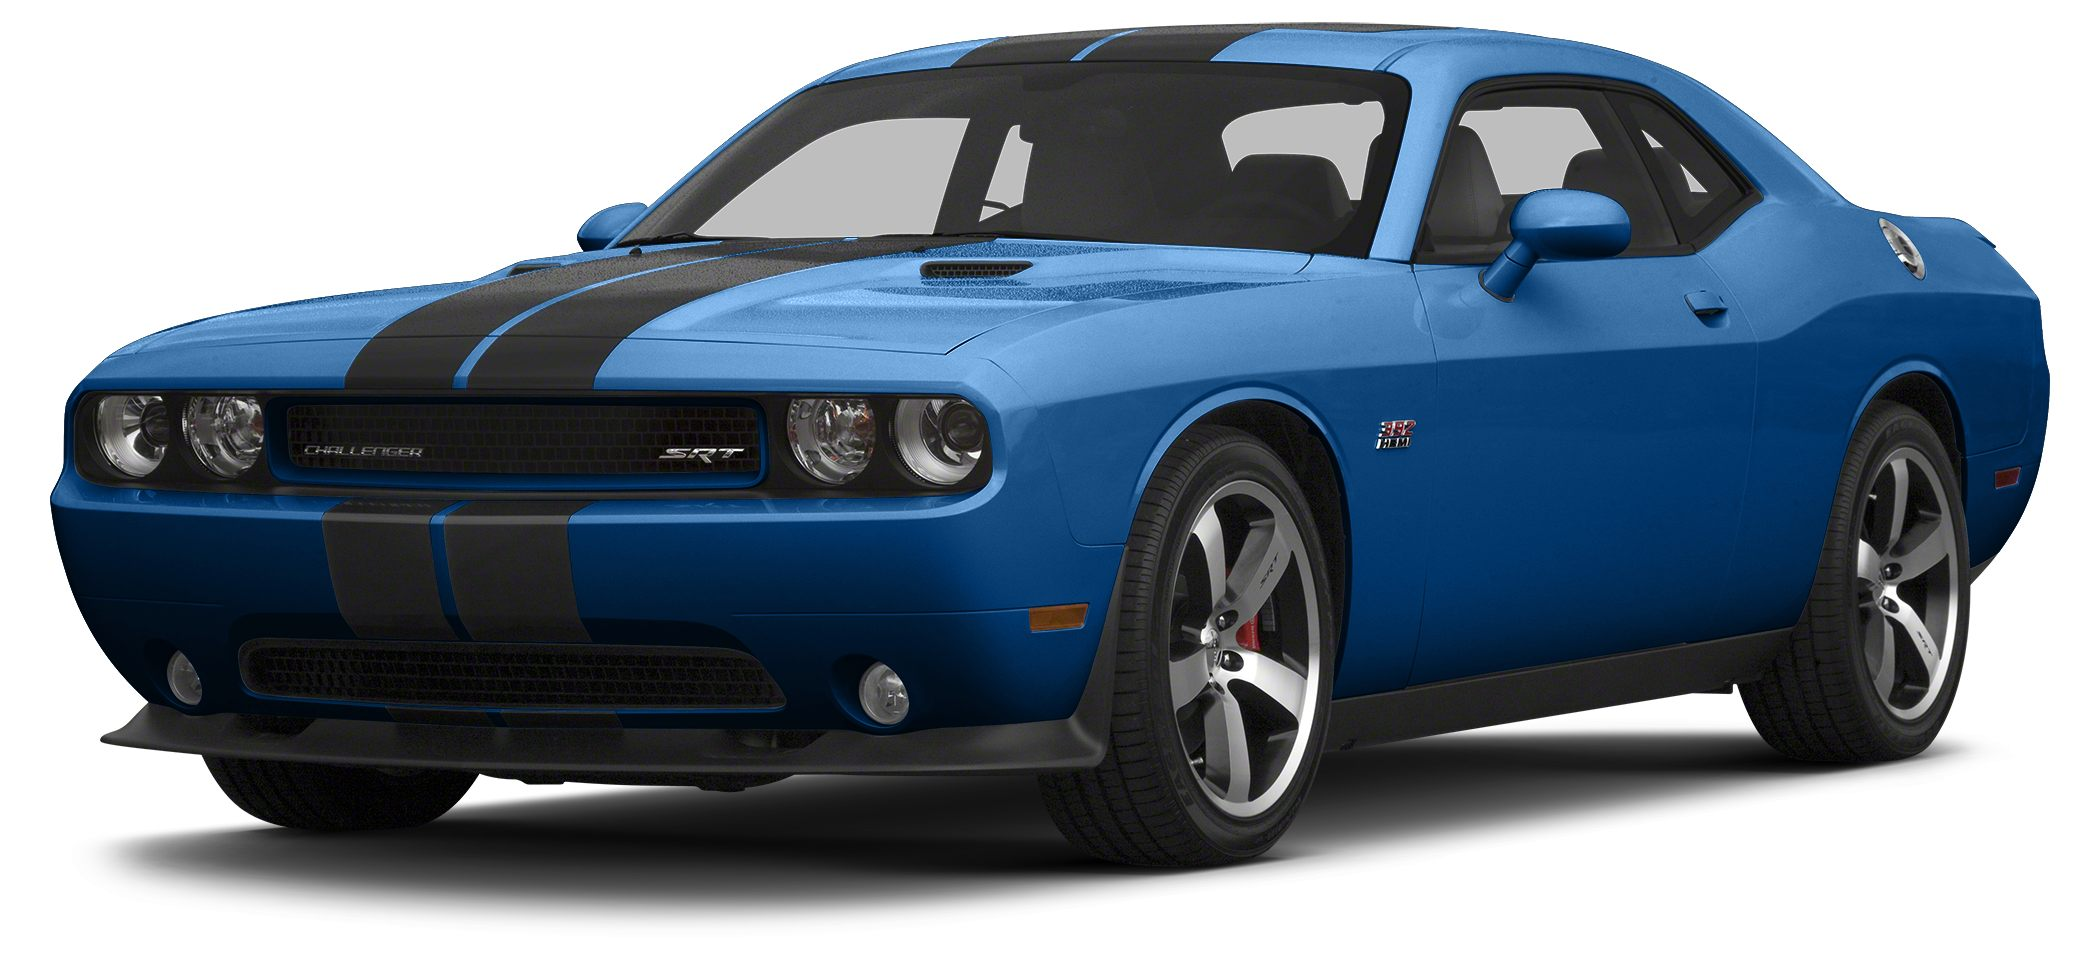 2013 Dodge Challenger SRT8 ONE OWNER Harman kardon Audio Group 18 Speakers Premium Audio System